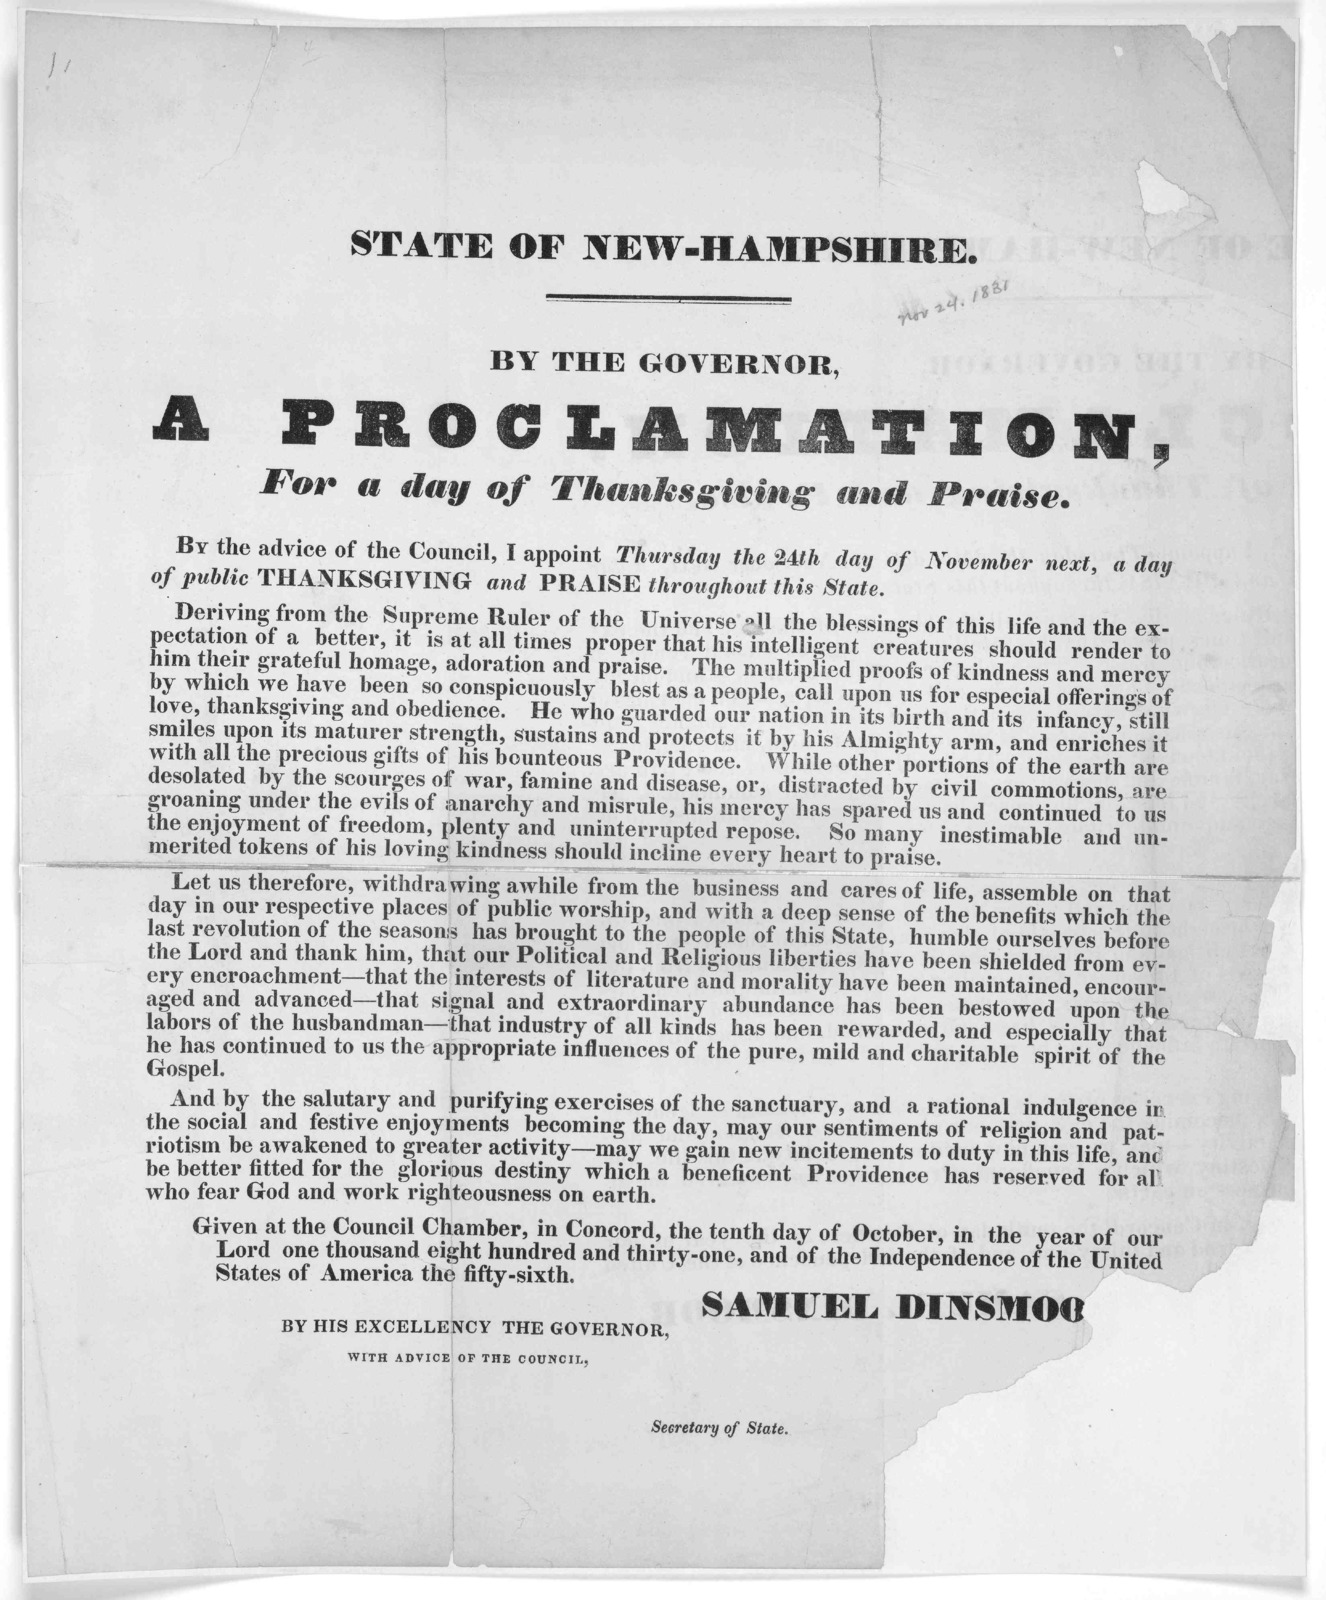 State of New-Hampshire. By the Governor, A proclamation, for a day of Thanksgiving and praise. By the advice of the Council, I appoint Thursday the 24th day of November next, a day of public Thanksgiving and praise throughout this State ... Give